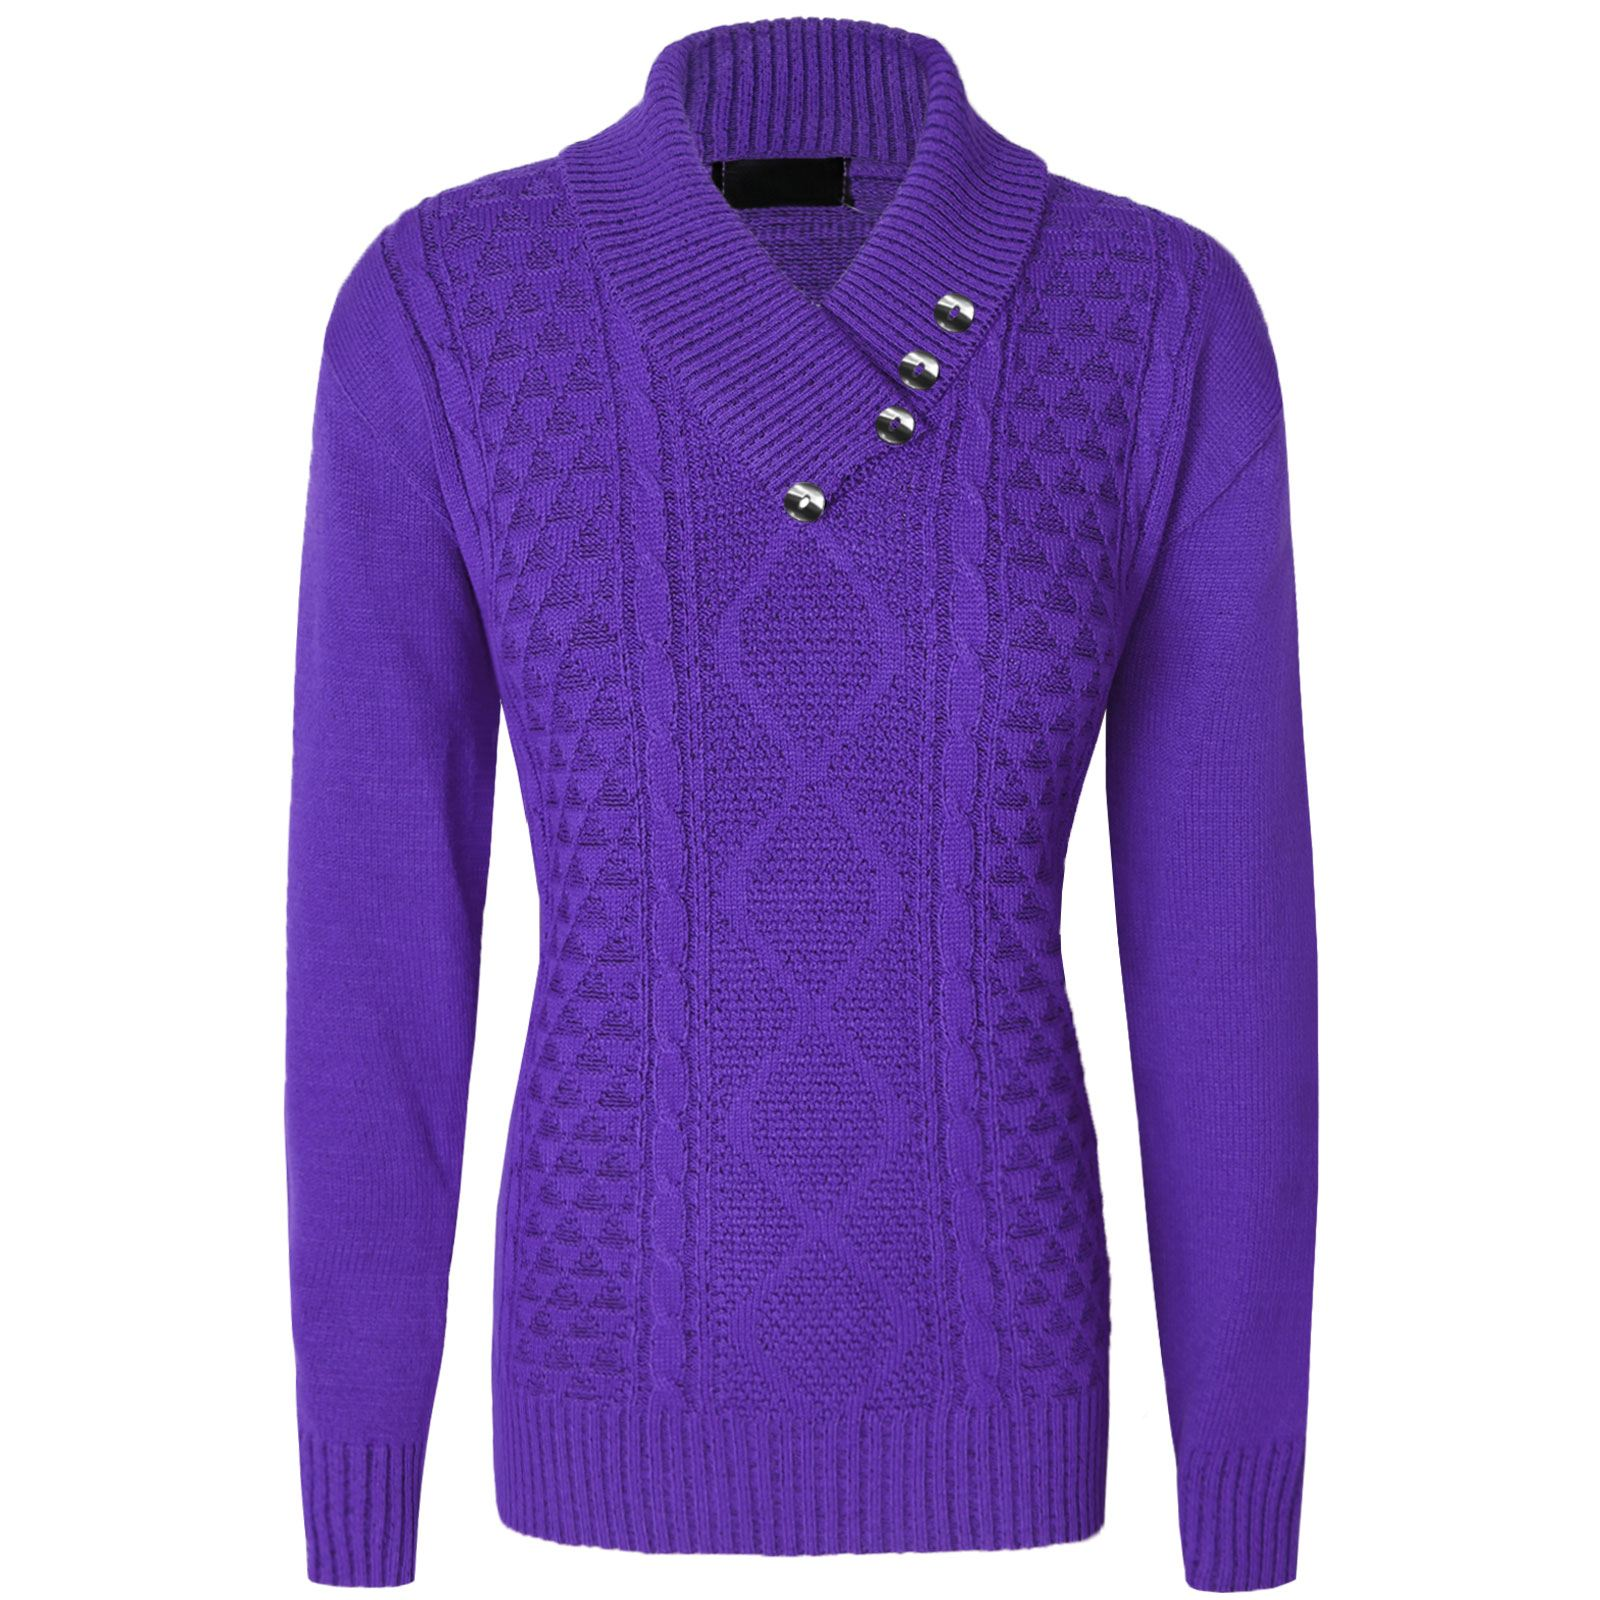 ... Sleeve Knitted Sweater Tops Purple M l. About this product. Picture 1  of 2  Picture 2 of 2 0c00a7513